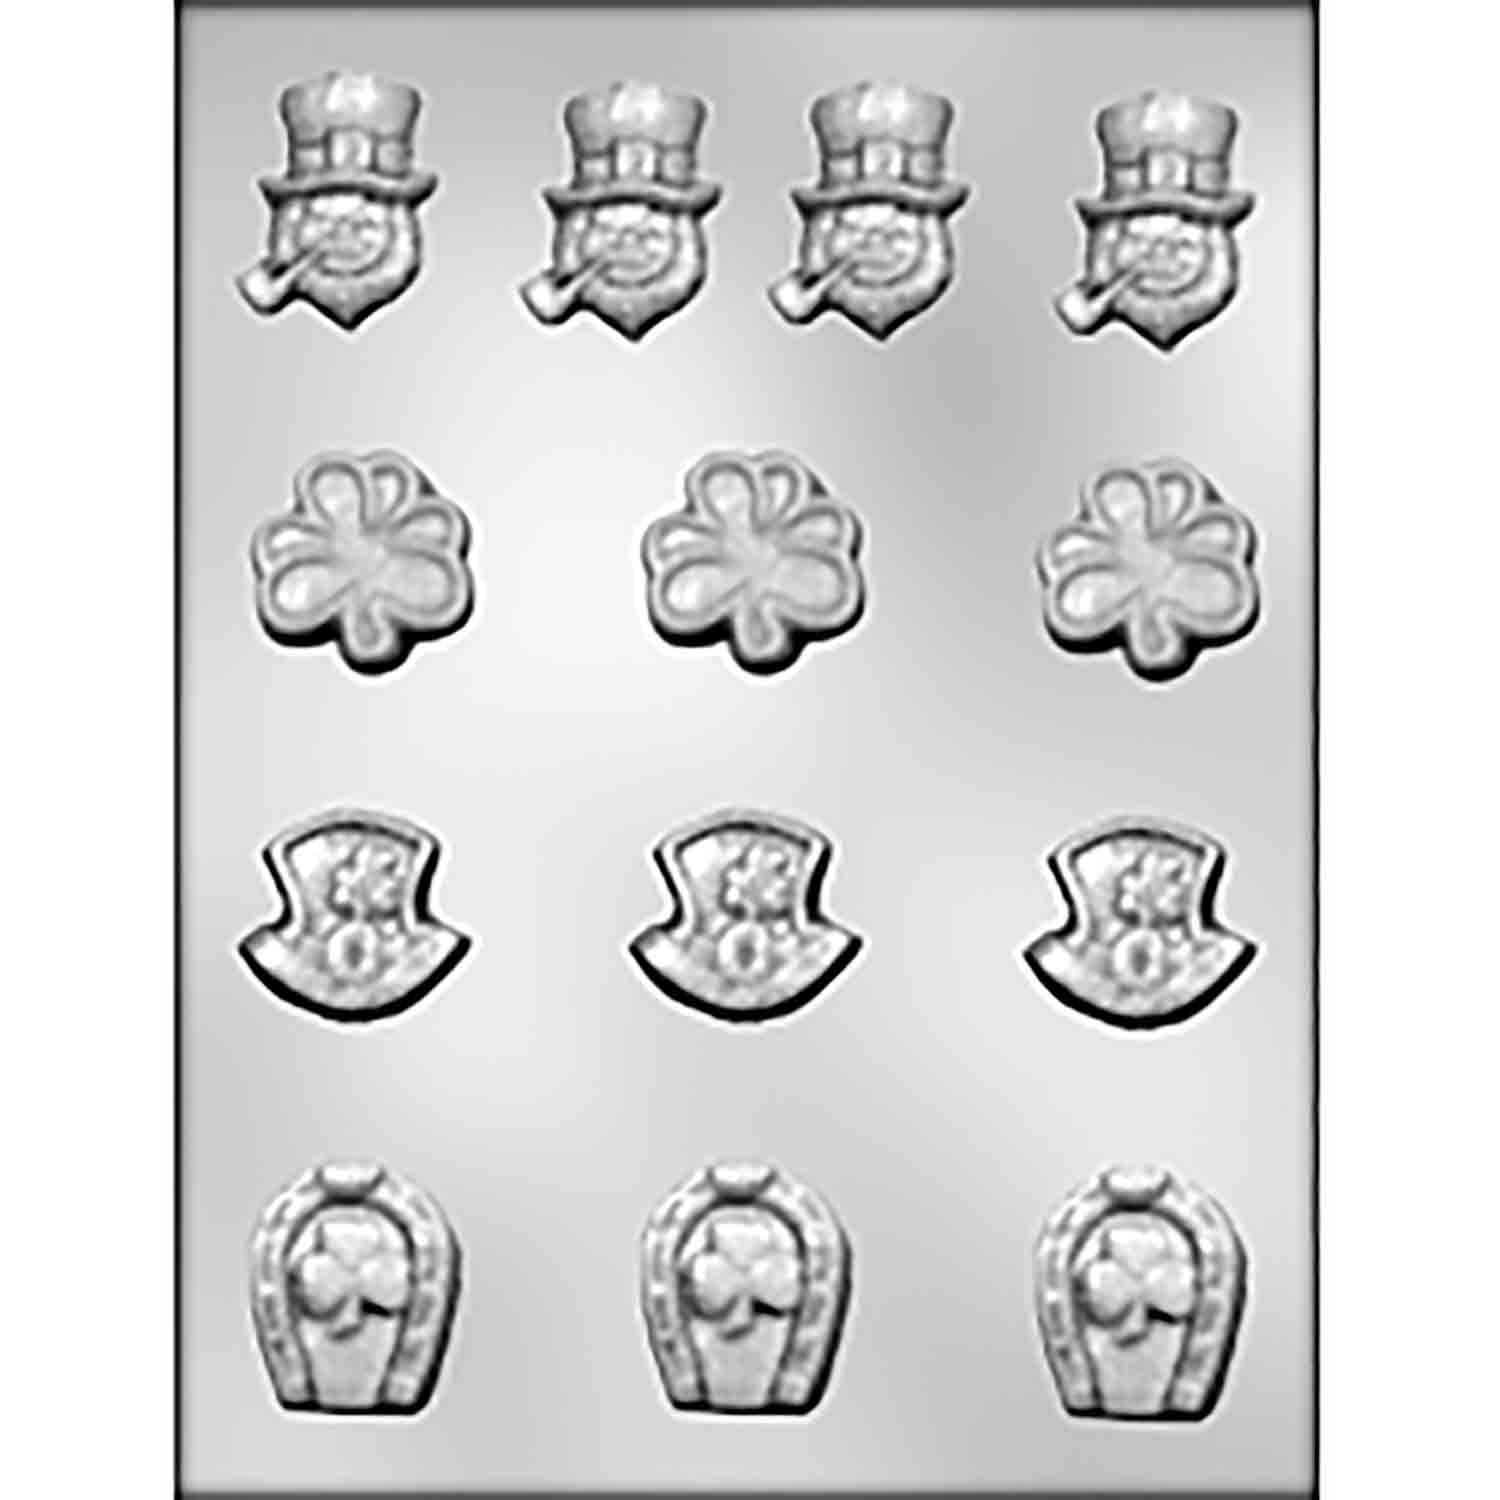 St. Patrick's Day Assortment Chocolate Candy Mold